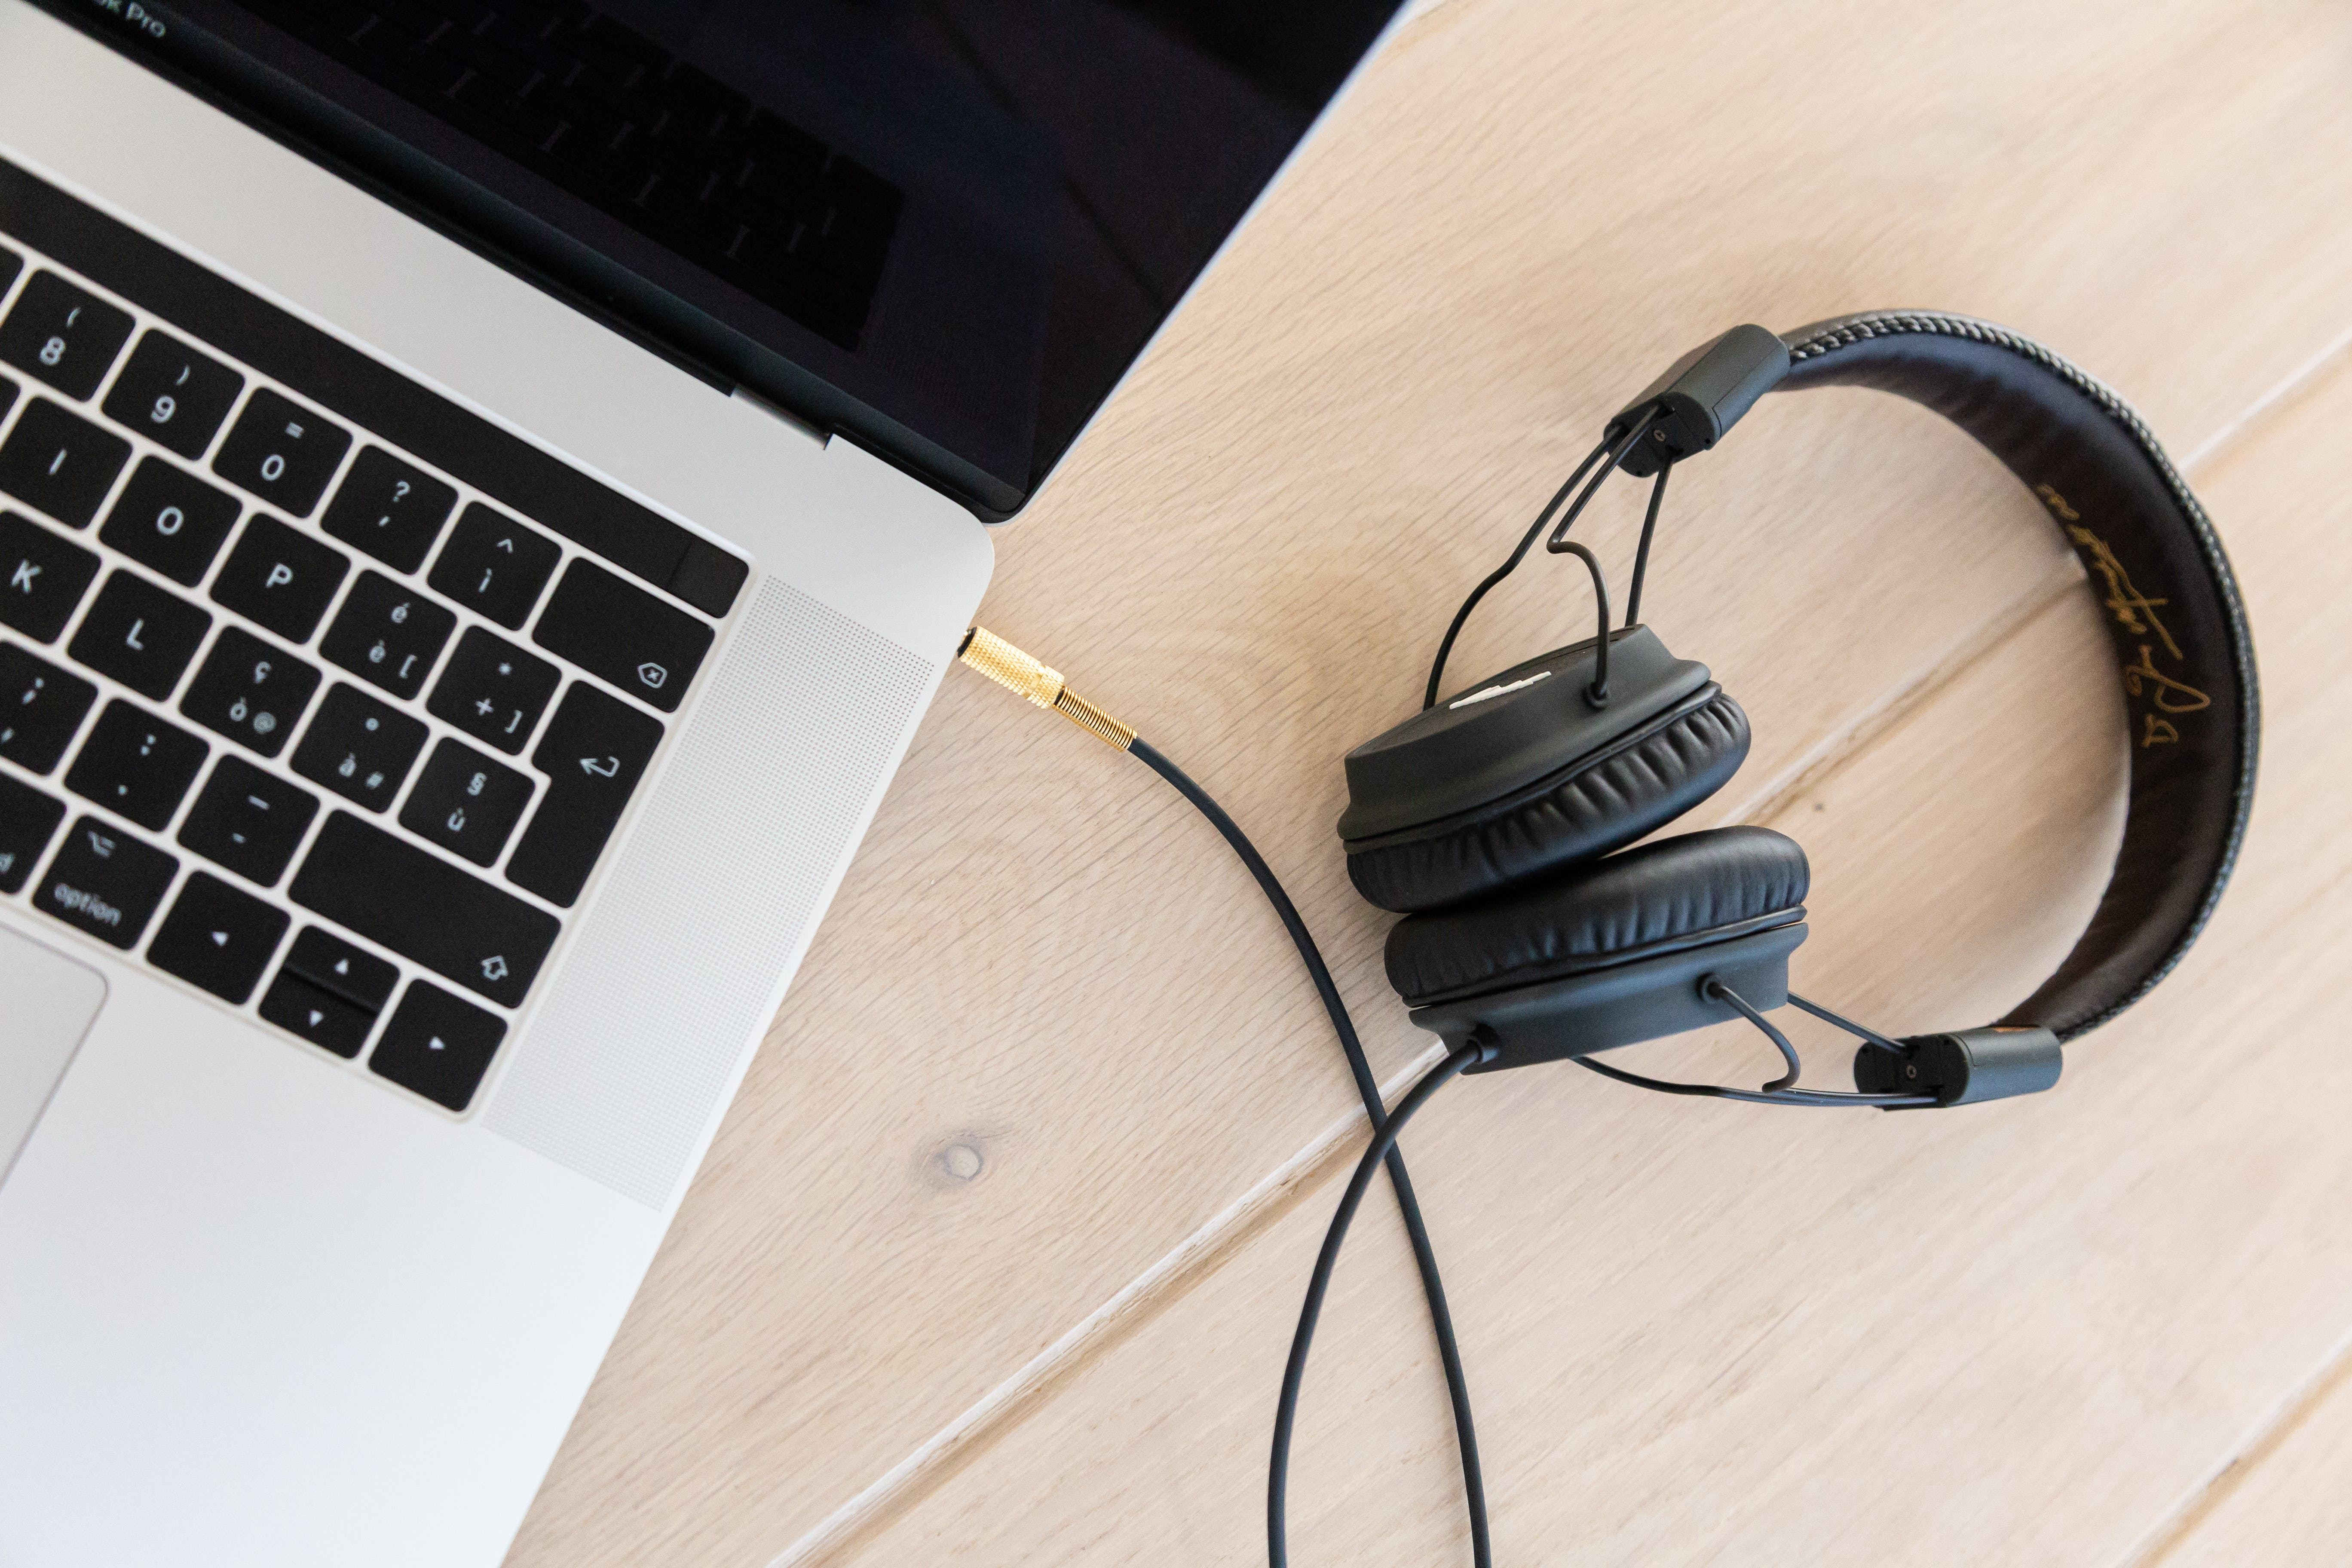 Black Corded Headphones Plugged in Macbook Pro on Brown Wooden Surface